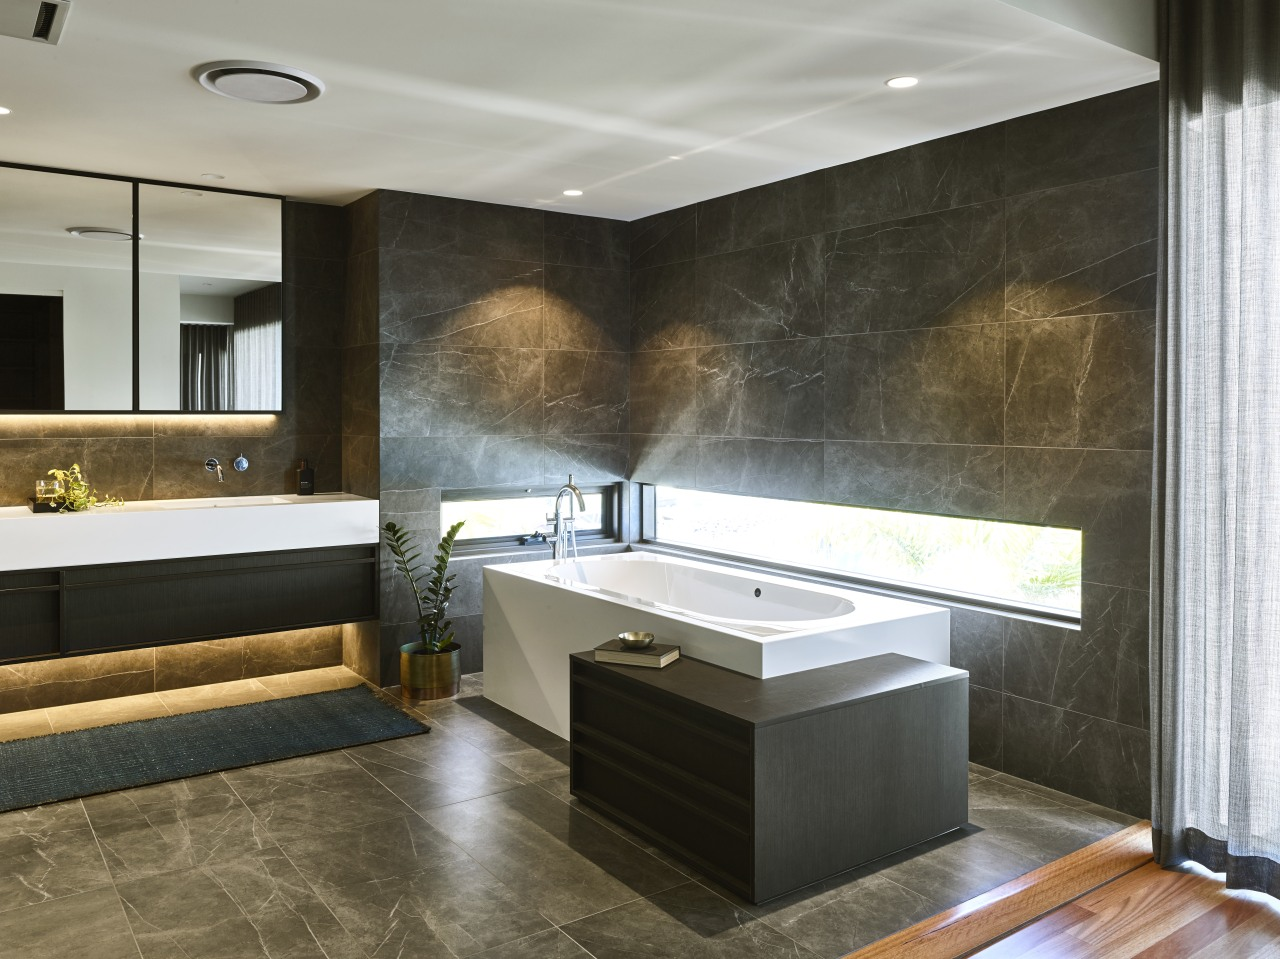 This bathroom has an attractive, balanced lighting scheme architecture, bathroom, bathtub, building, cabinetry, ceiling, countertop, design, floor, flooring, furniture, home, house, interior design, lighting, material property, plumbing fixture, property, room, sink, tap, tile, wall, black, gray